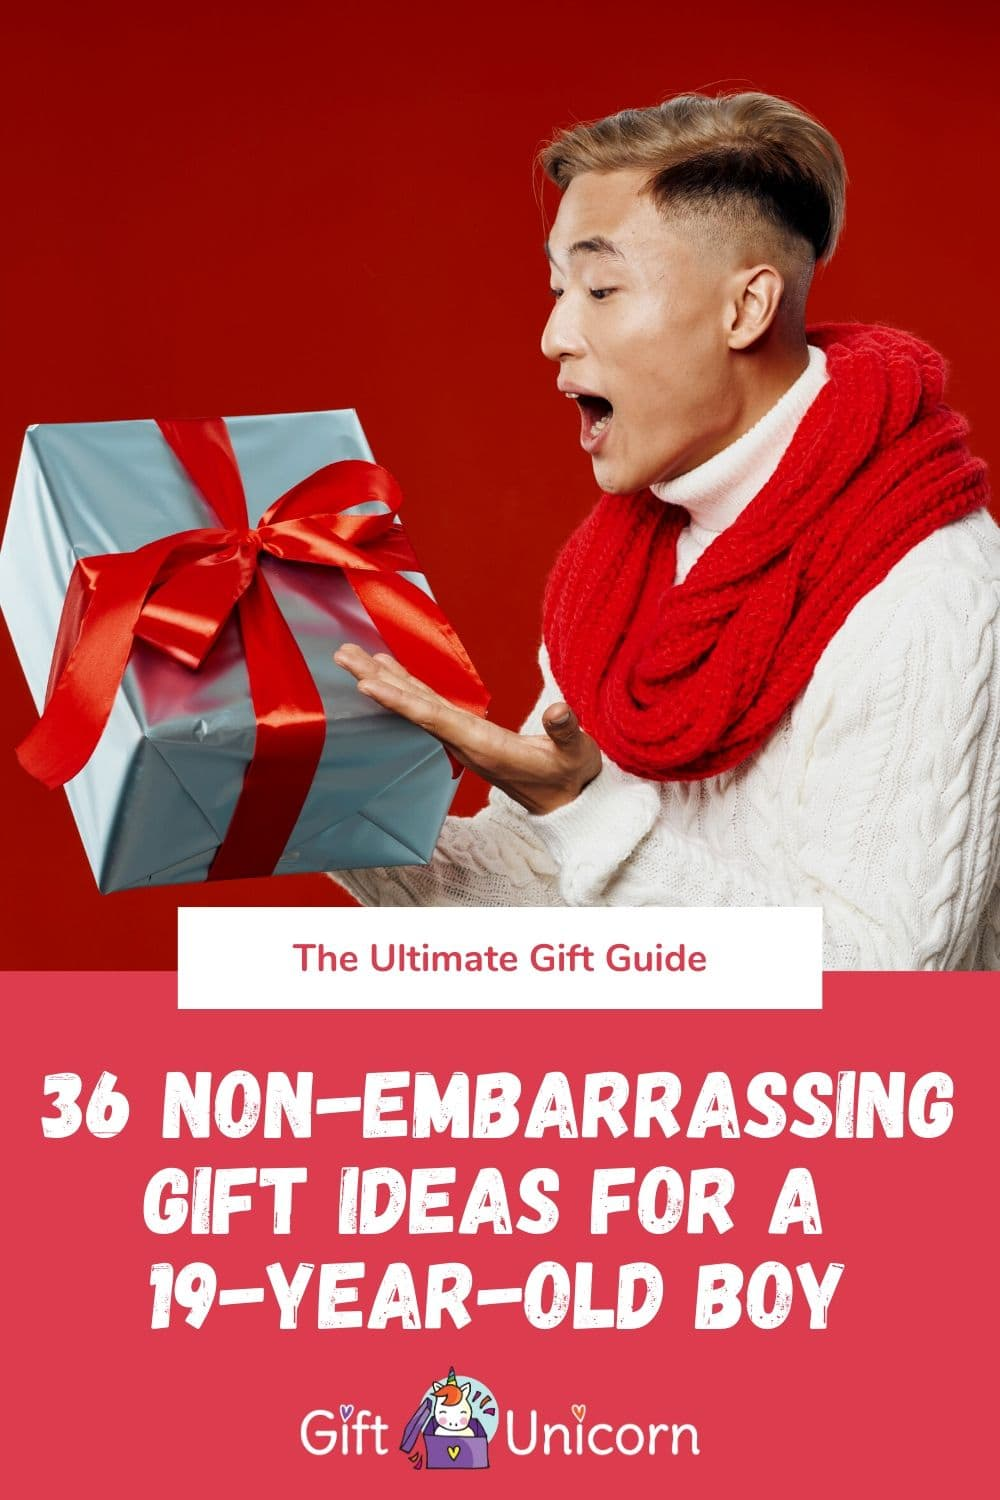 36 non embarassing gift ideas for a 19 yearrs old boy pinterest pin image